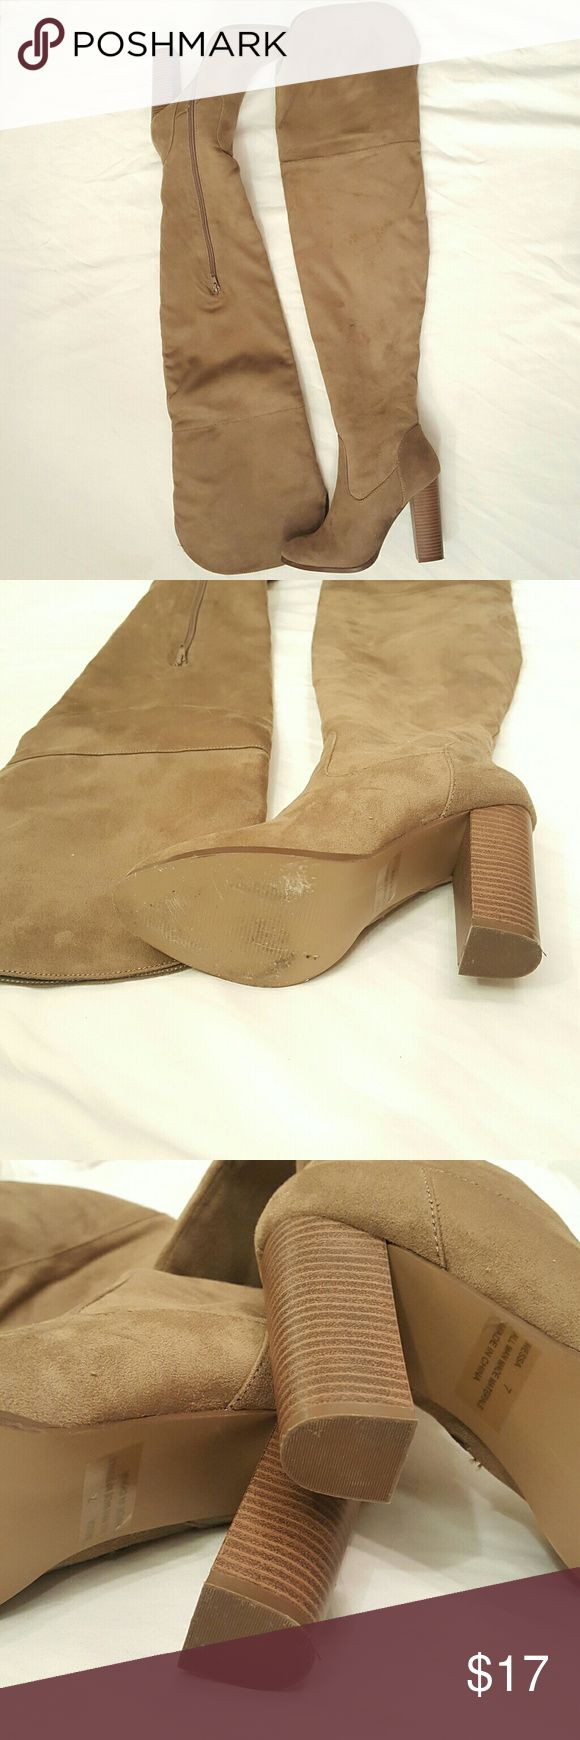 Charlotte Ruuse Thigh High Boots Worn twice. As you can see, very minimal wear on the soles. Charlotte Russe Shoes Over the Knee Boots